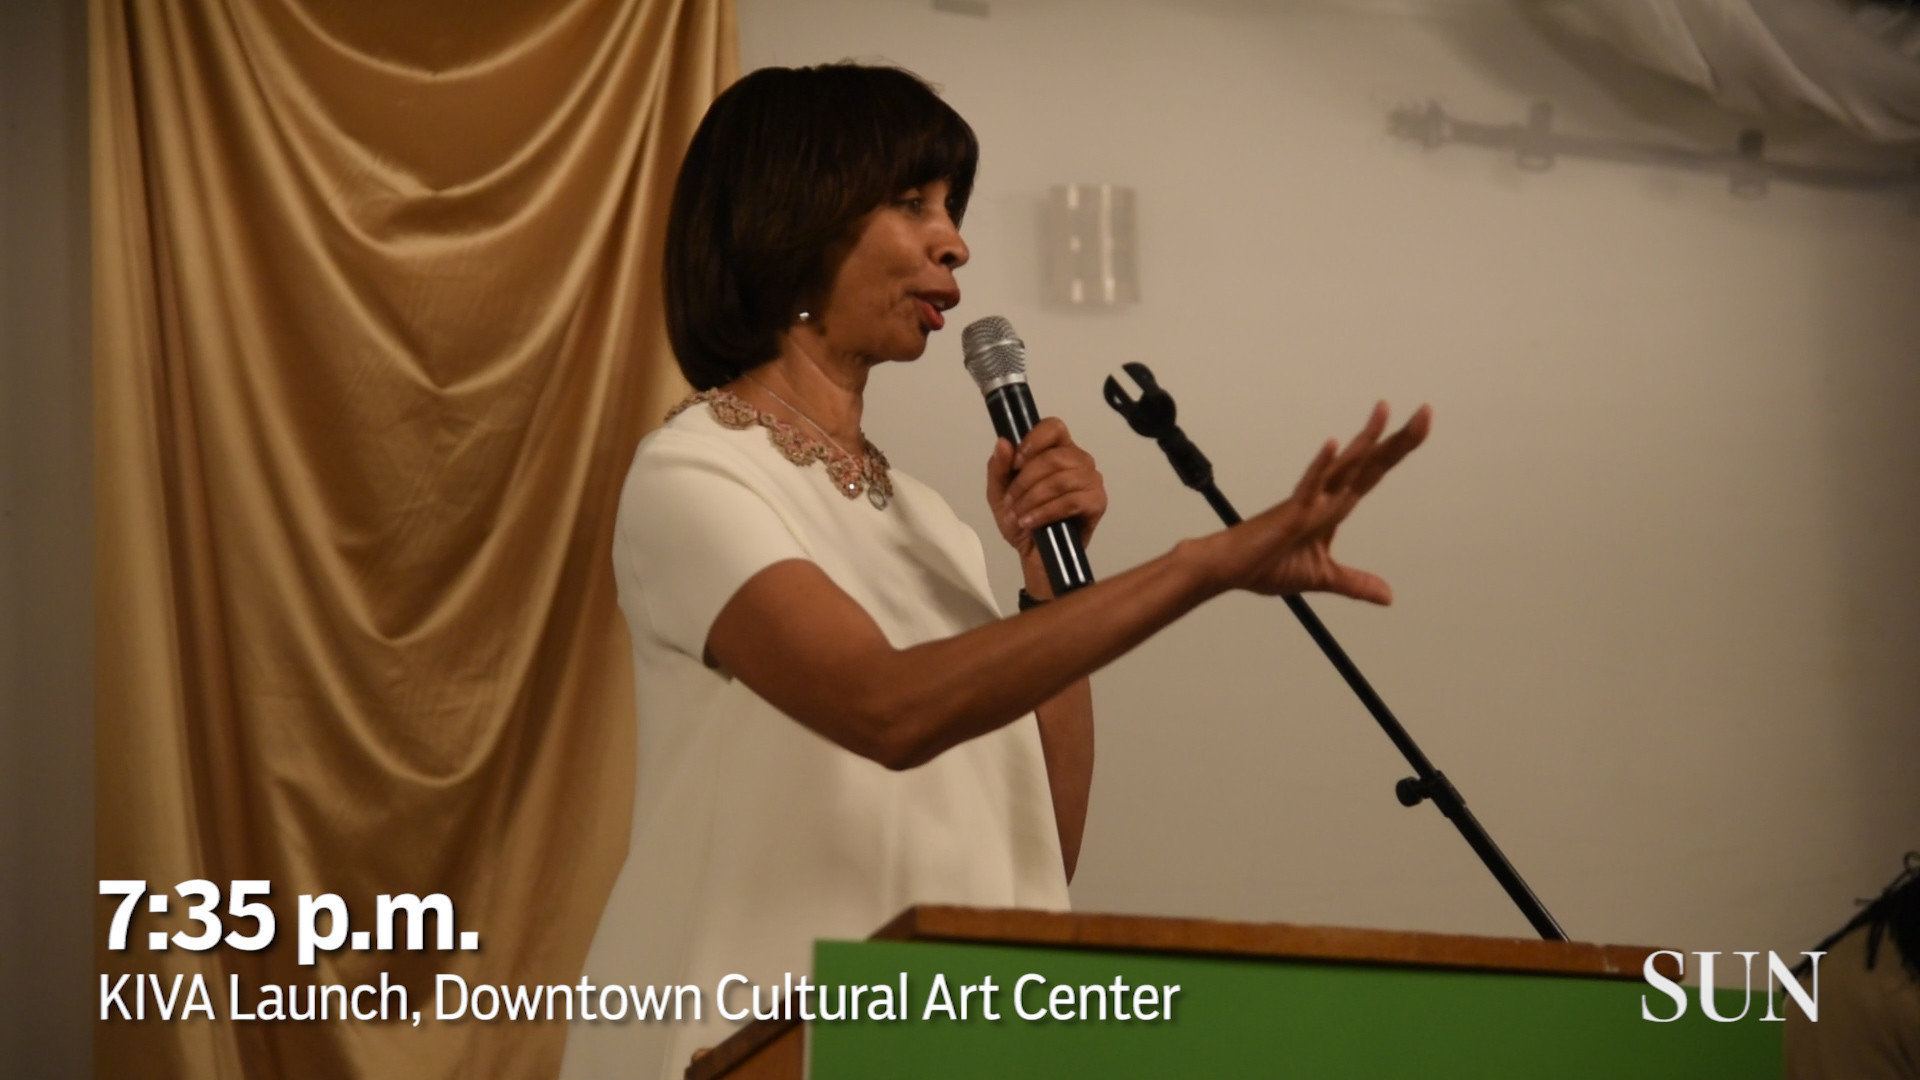 A day in the life of Baltimore City Mayor Catherine Pugh